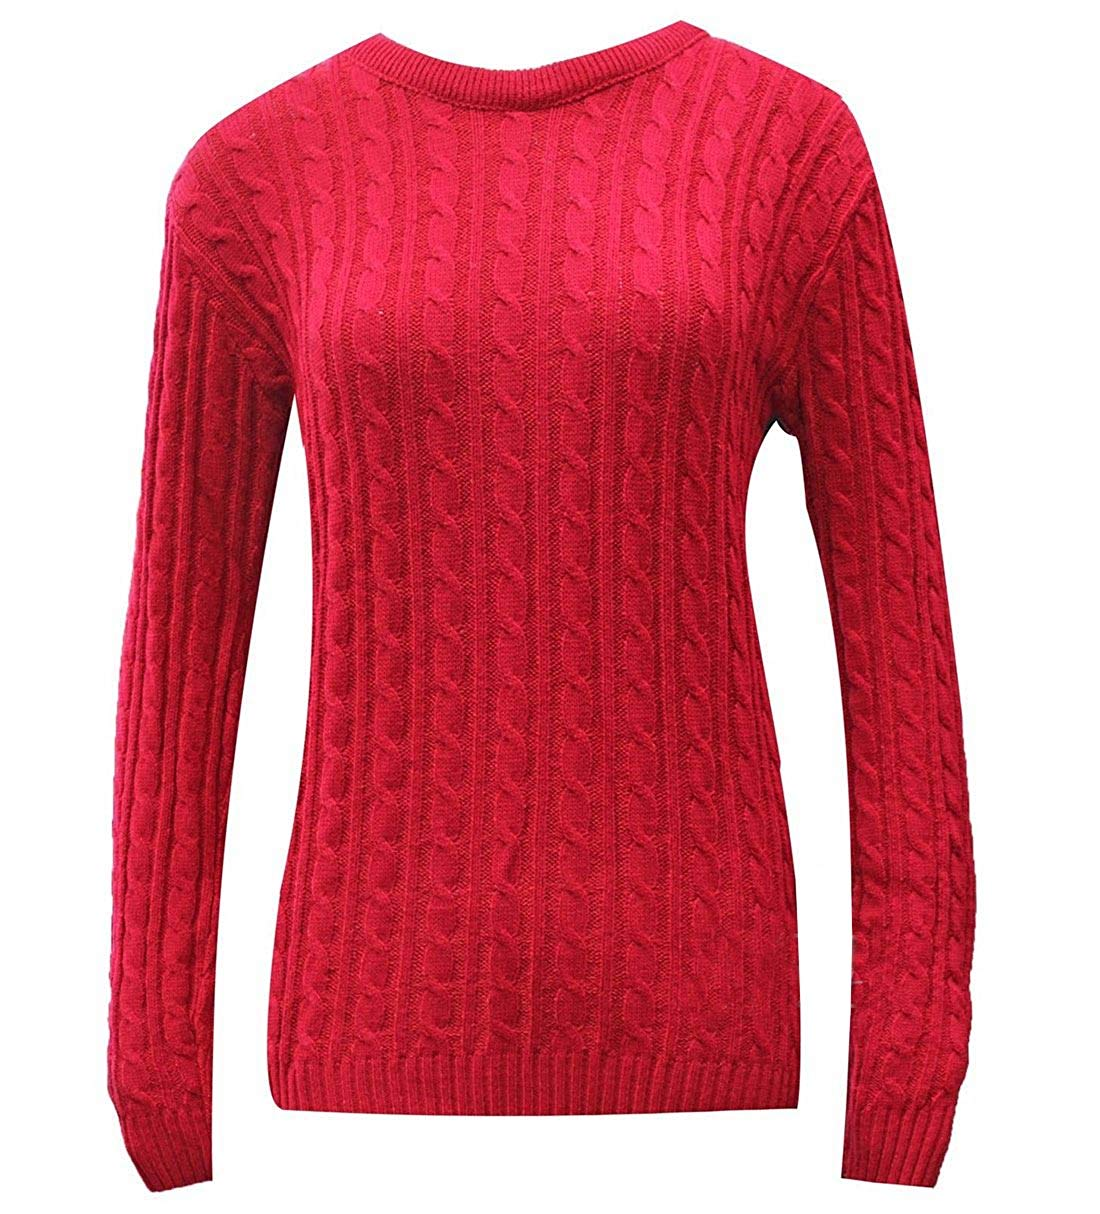 Rimi Hanger Womens Round Neck Cable Knitted Jumper Ladies Fancy Dress Party Wear Top S/L